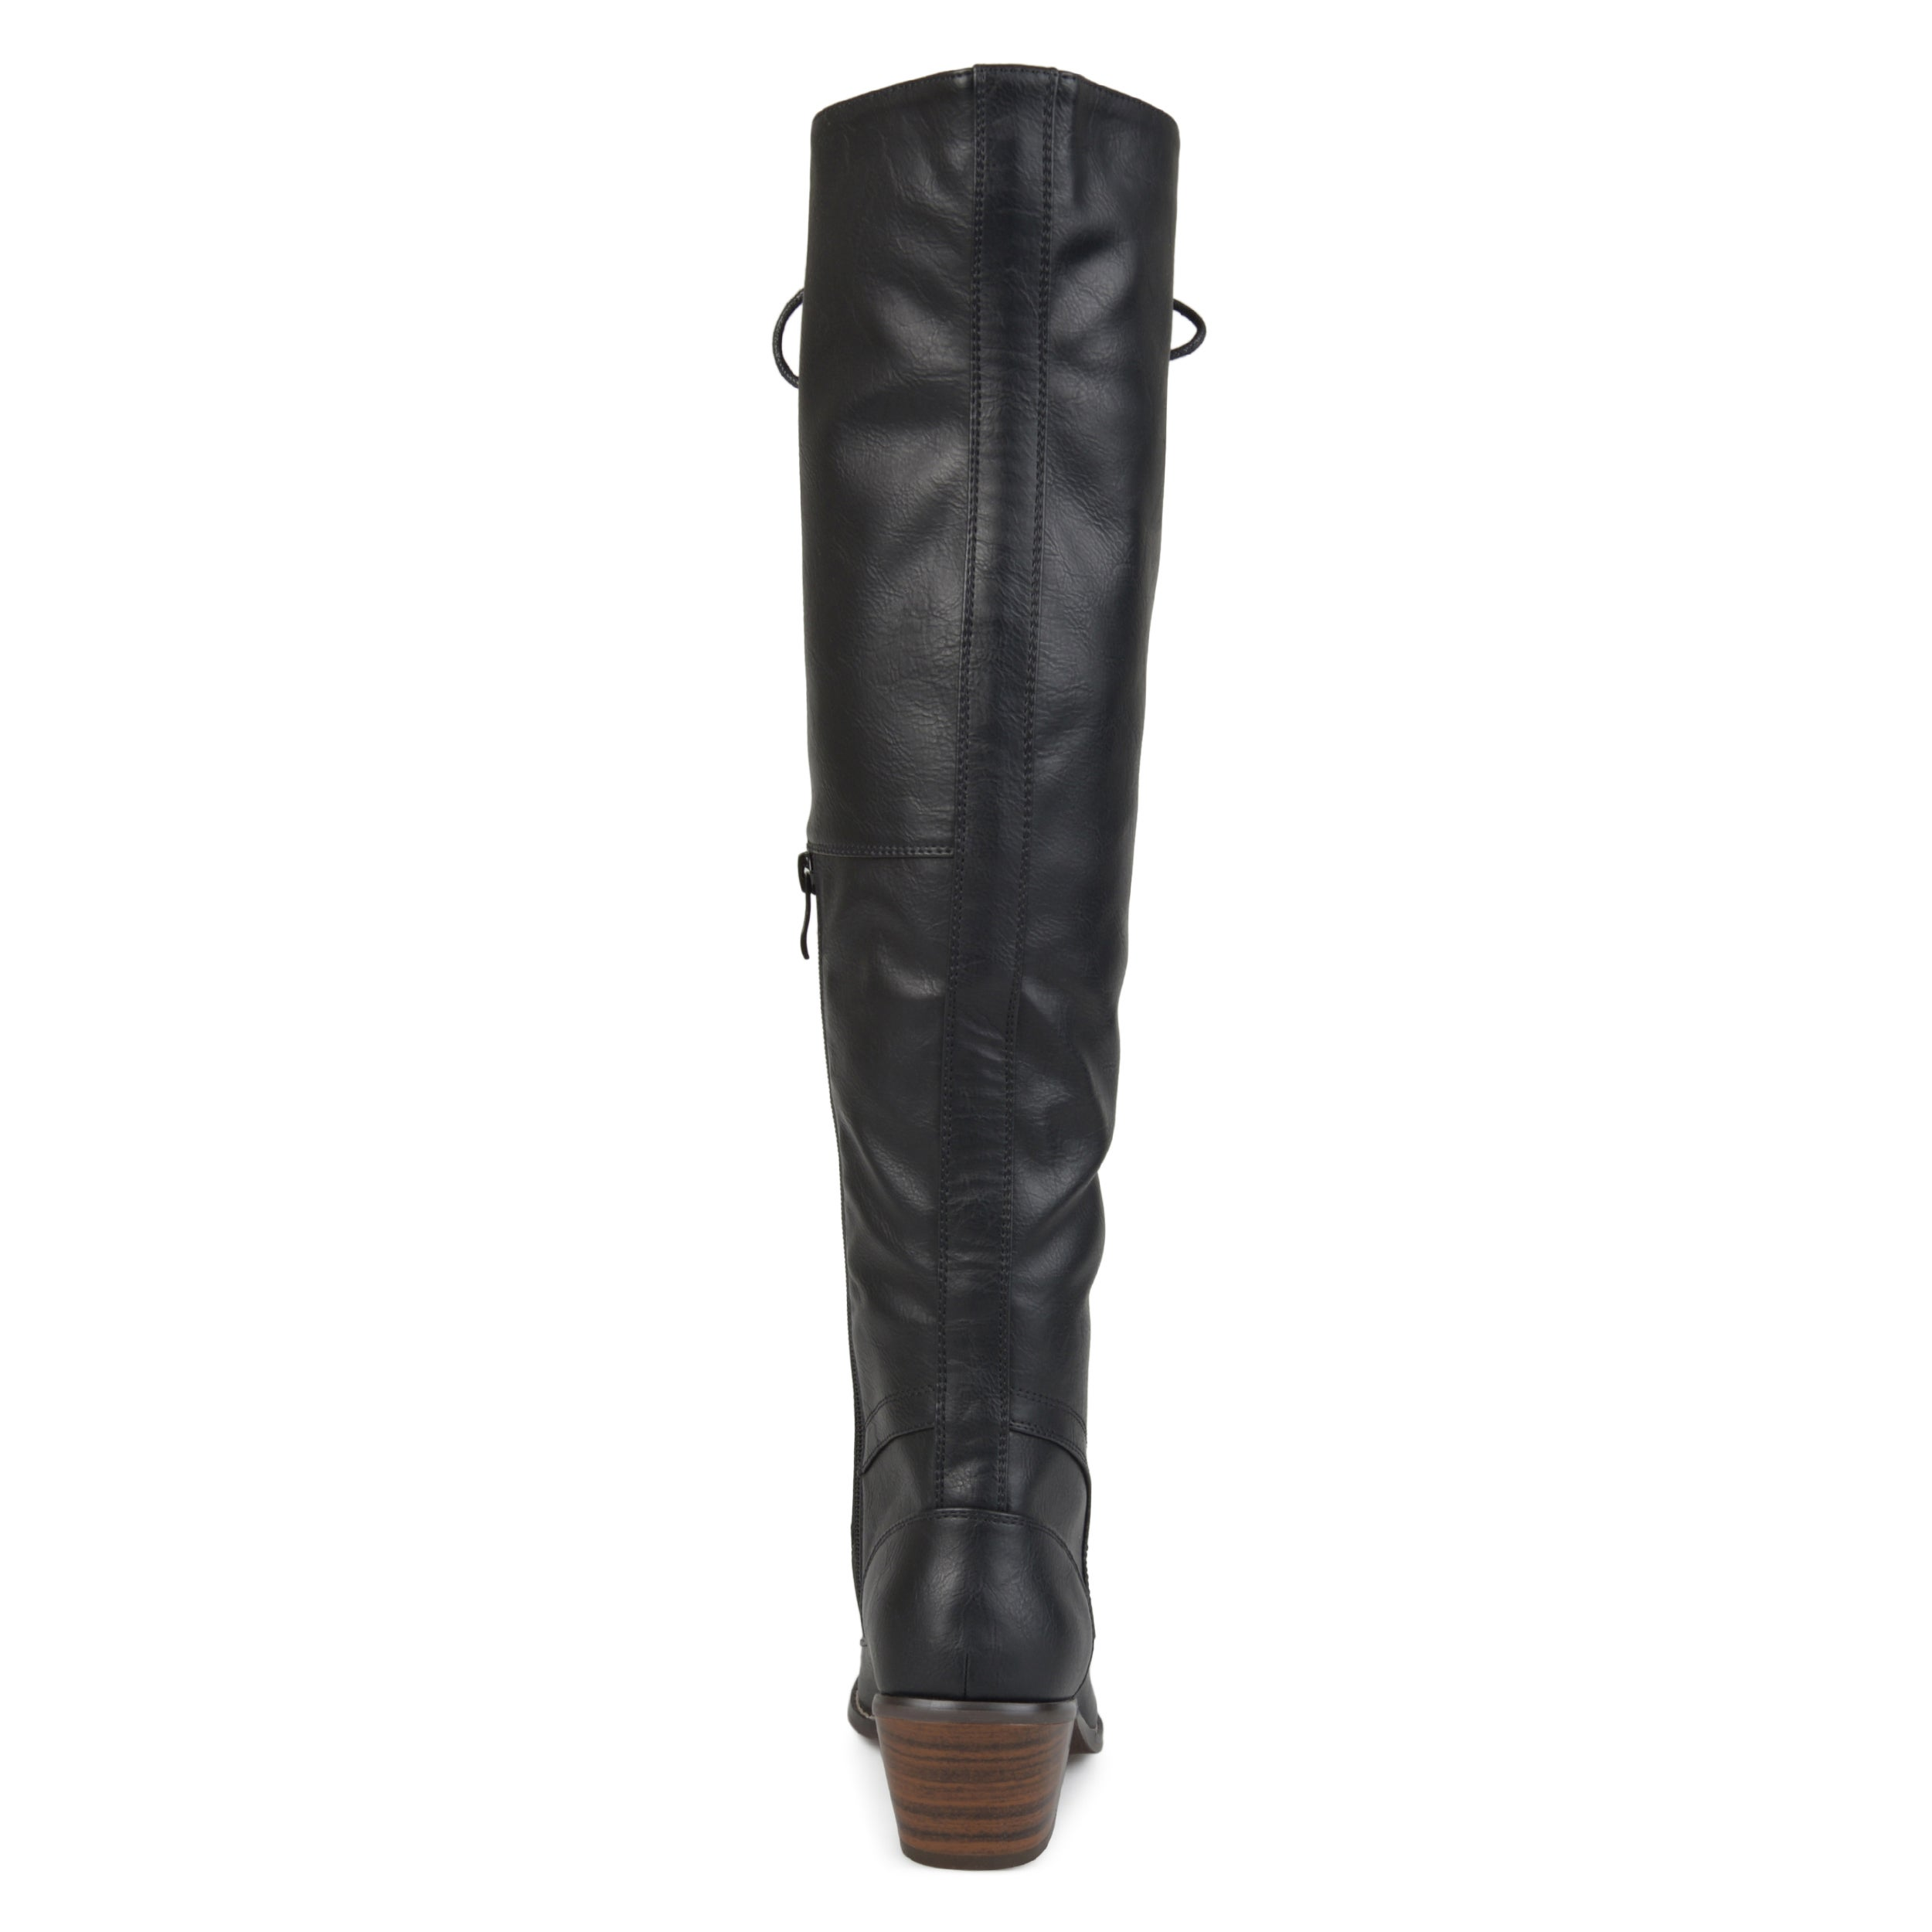 10925ac5327 Journee Collection Women's 'Bazel' Regular and Wide Calf Brogue Lace-up  Over-the-knee Boots